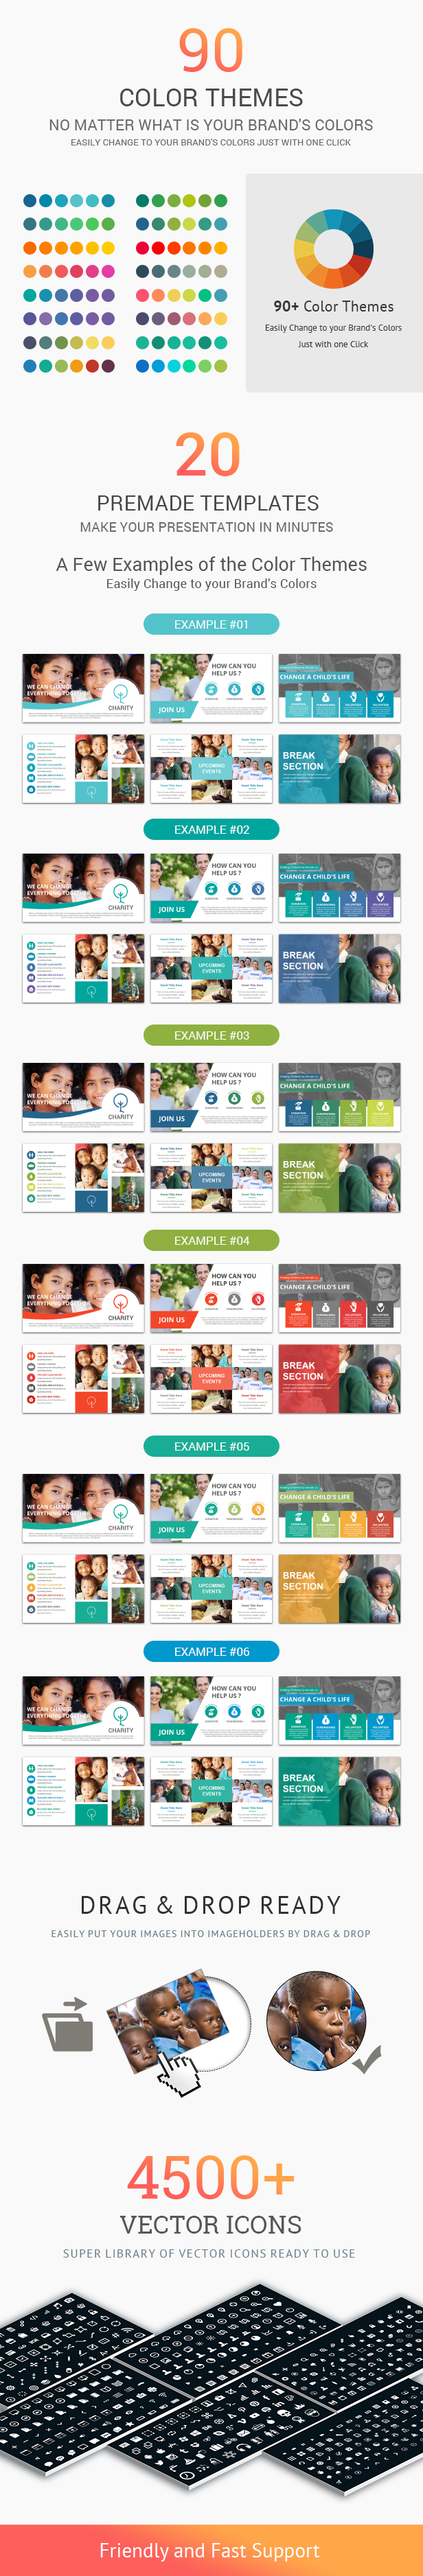 Charity Creative PowerPoint Presentation Template - 1